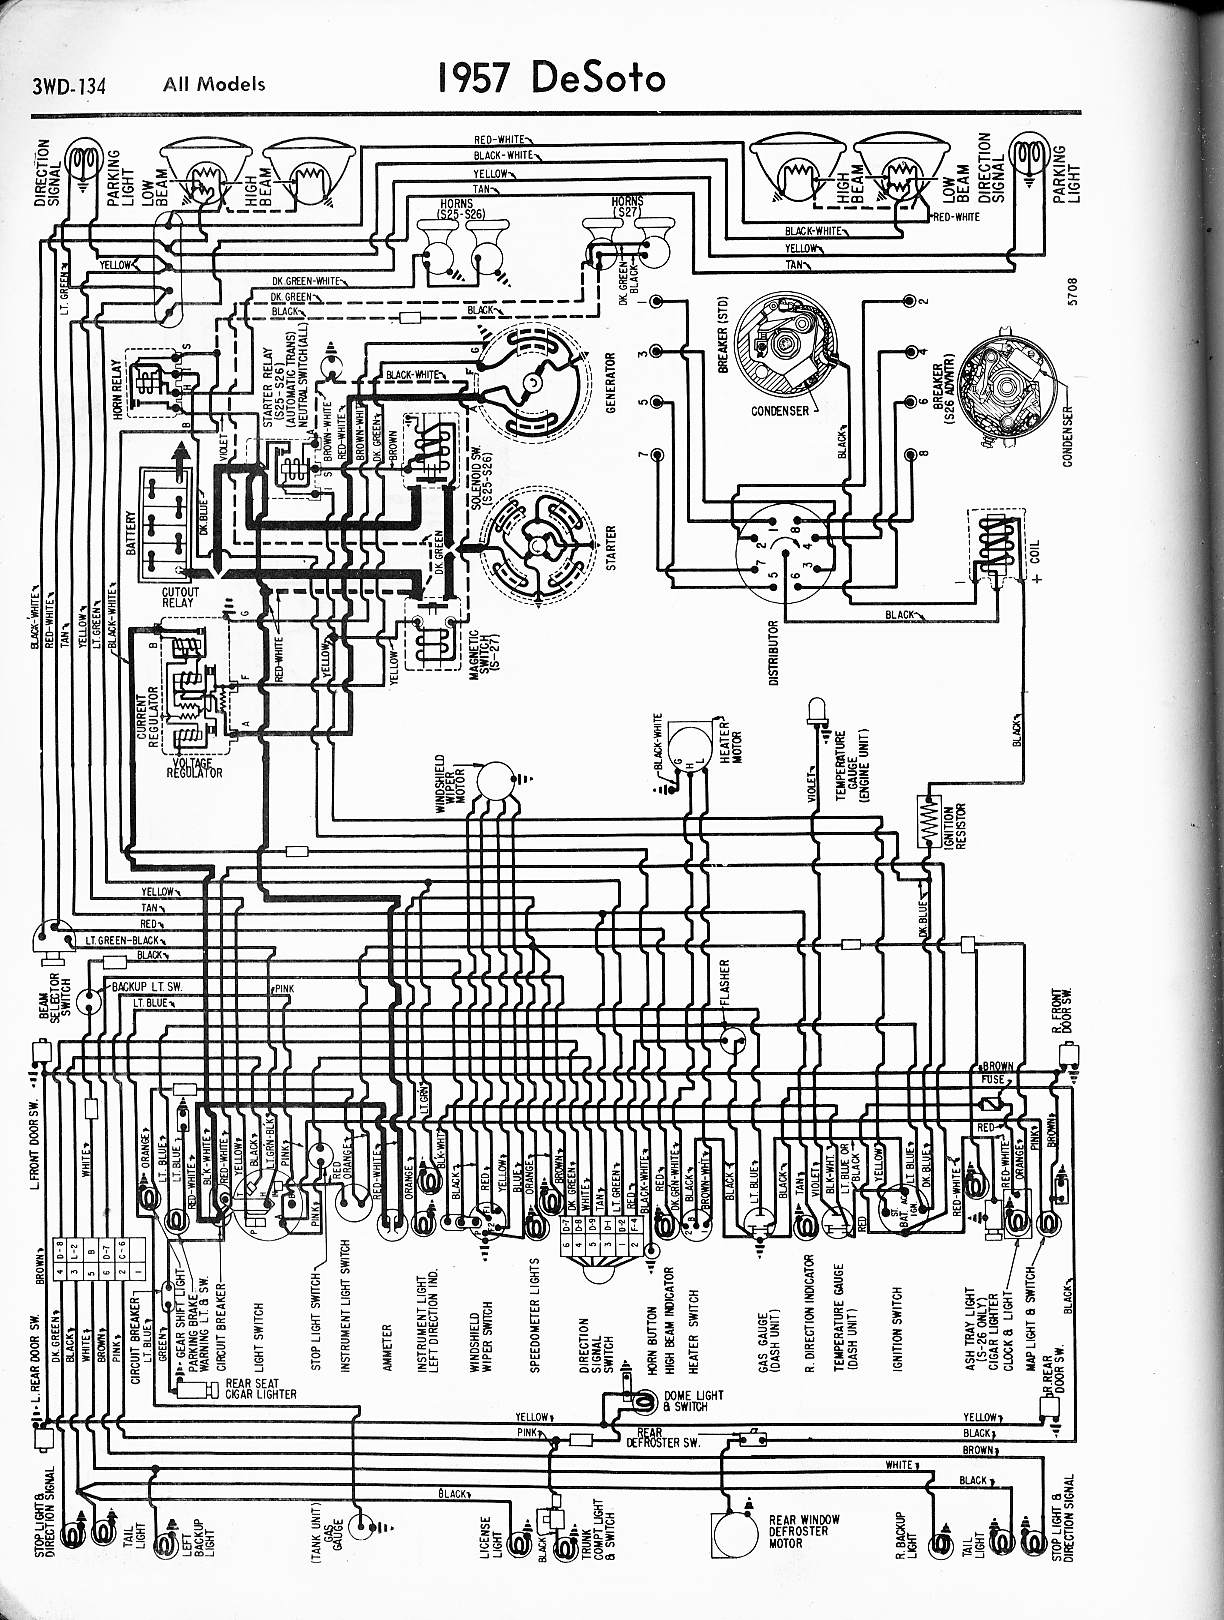 1959 Desoto Wiring Diagram Opinions About 1950 De Soto Diagrams 1957 1965 Rh Oldcarmanualproject Com Lincoln